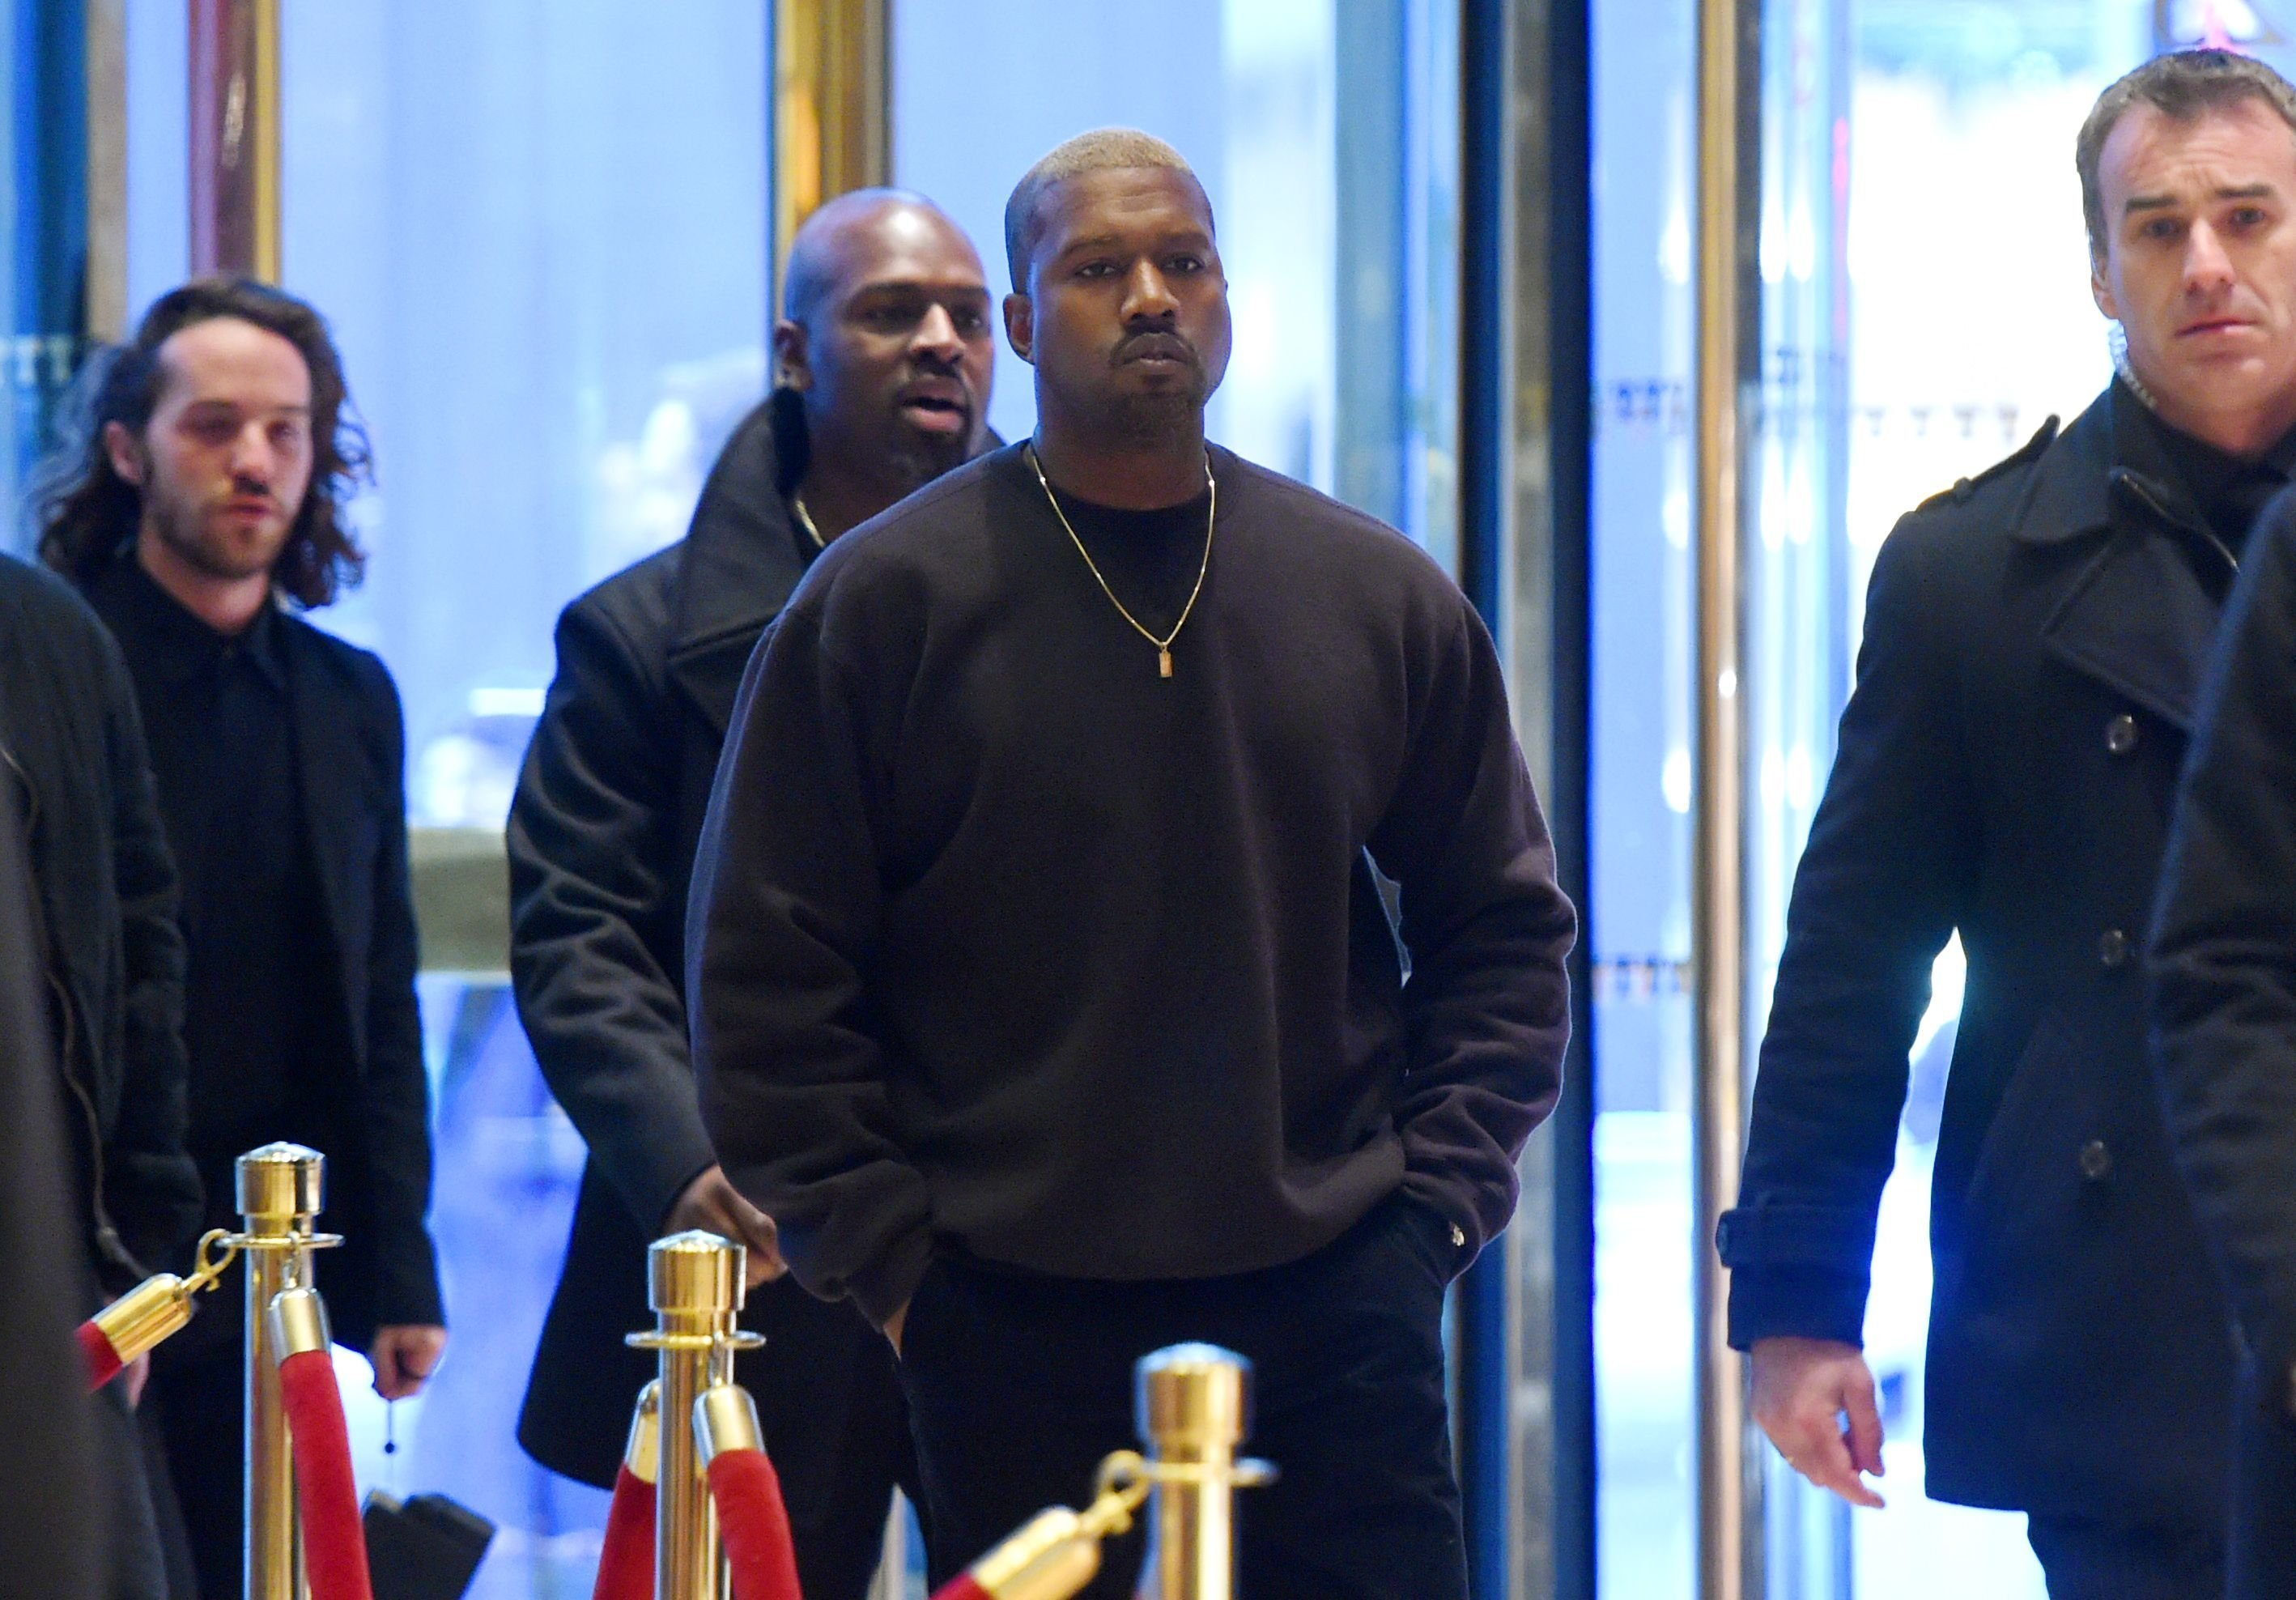 Kanye West: I love Donald Trump - he is my brother